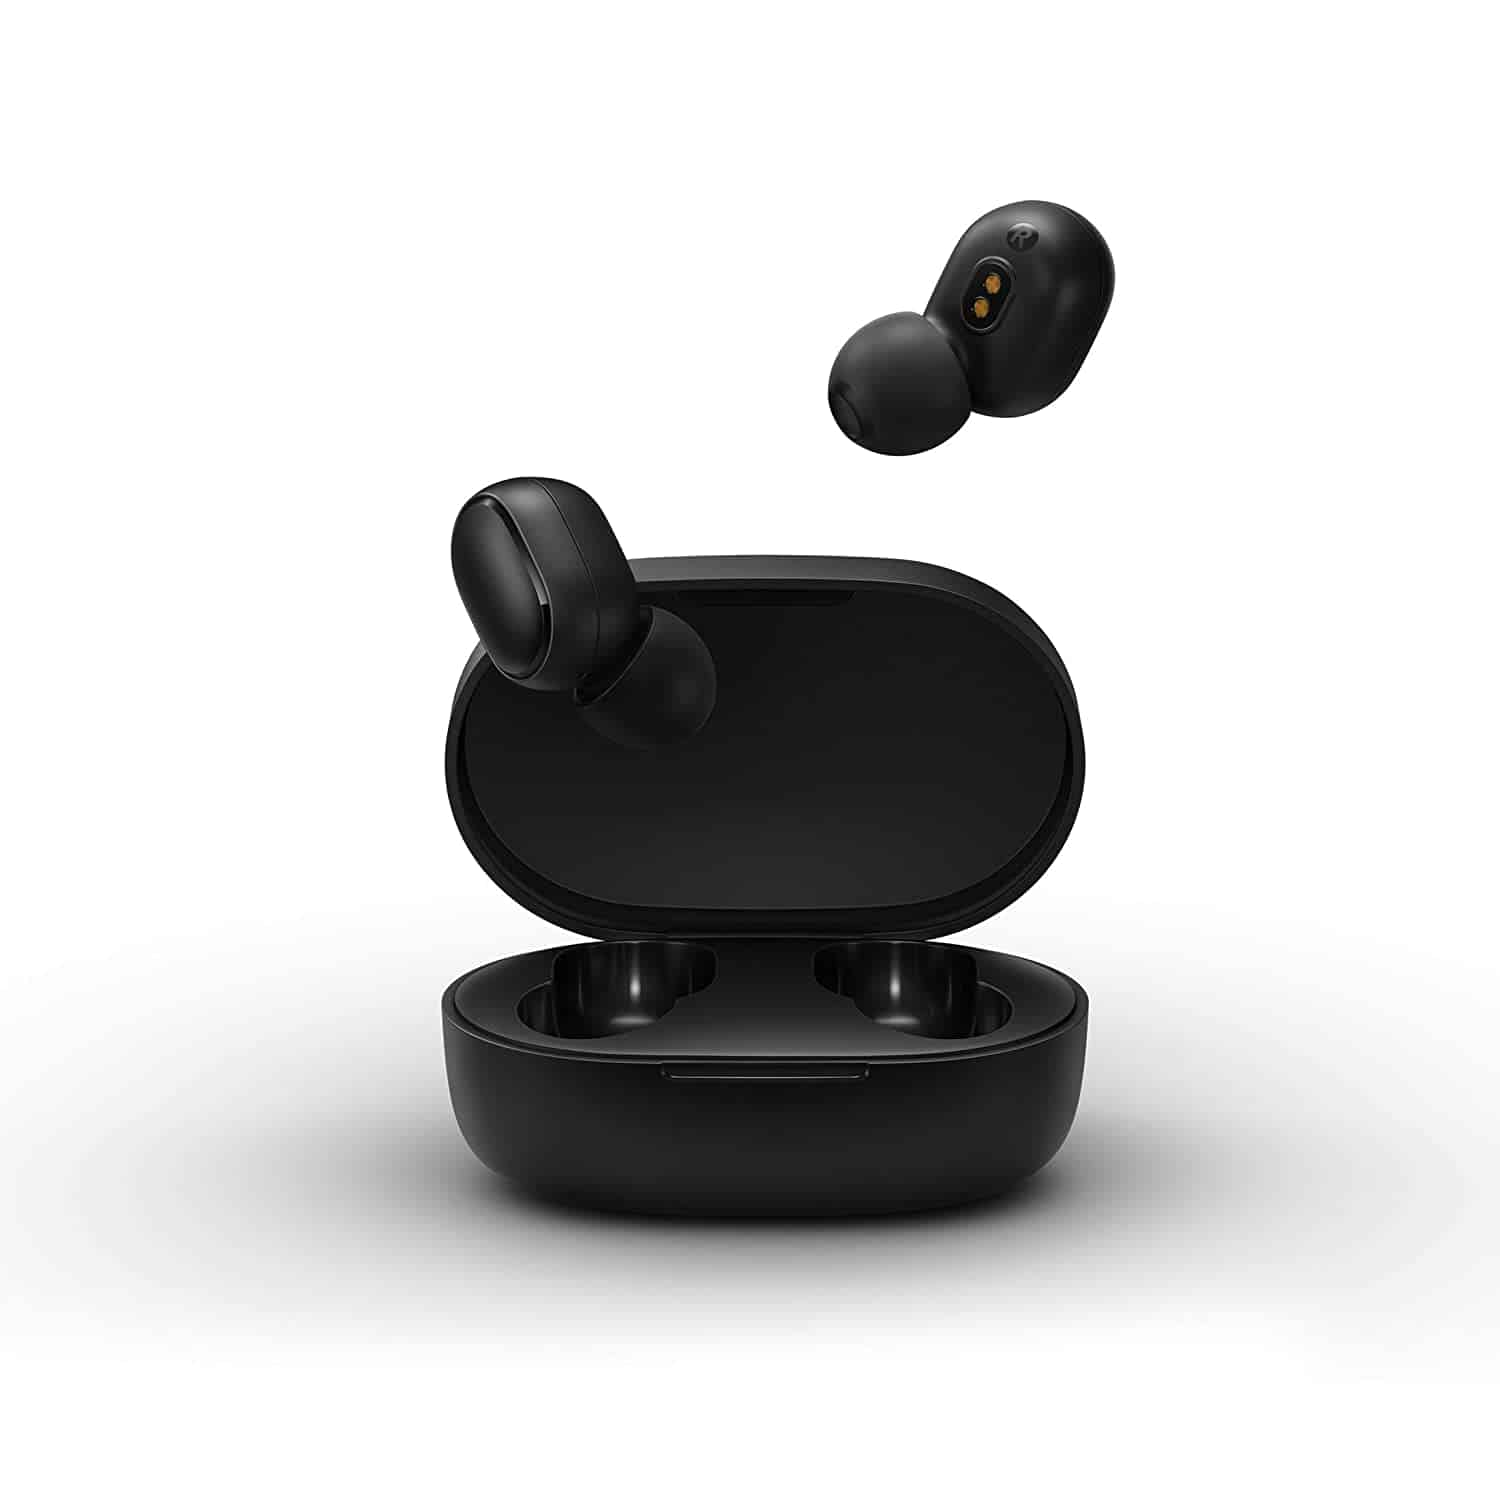 The Redmi Earbuds S